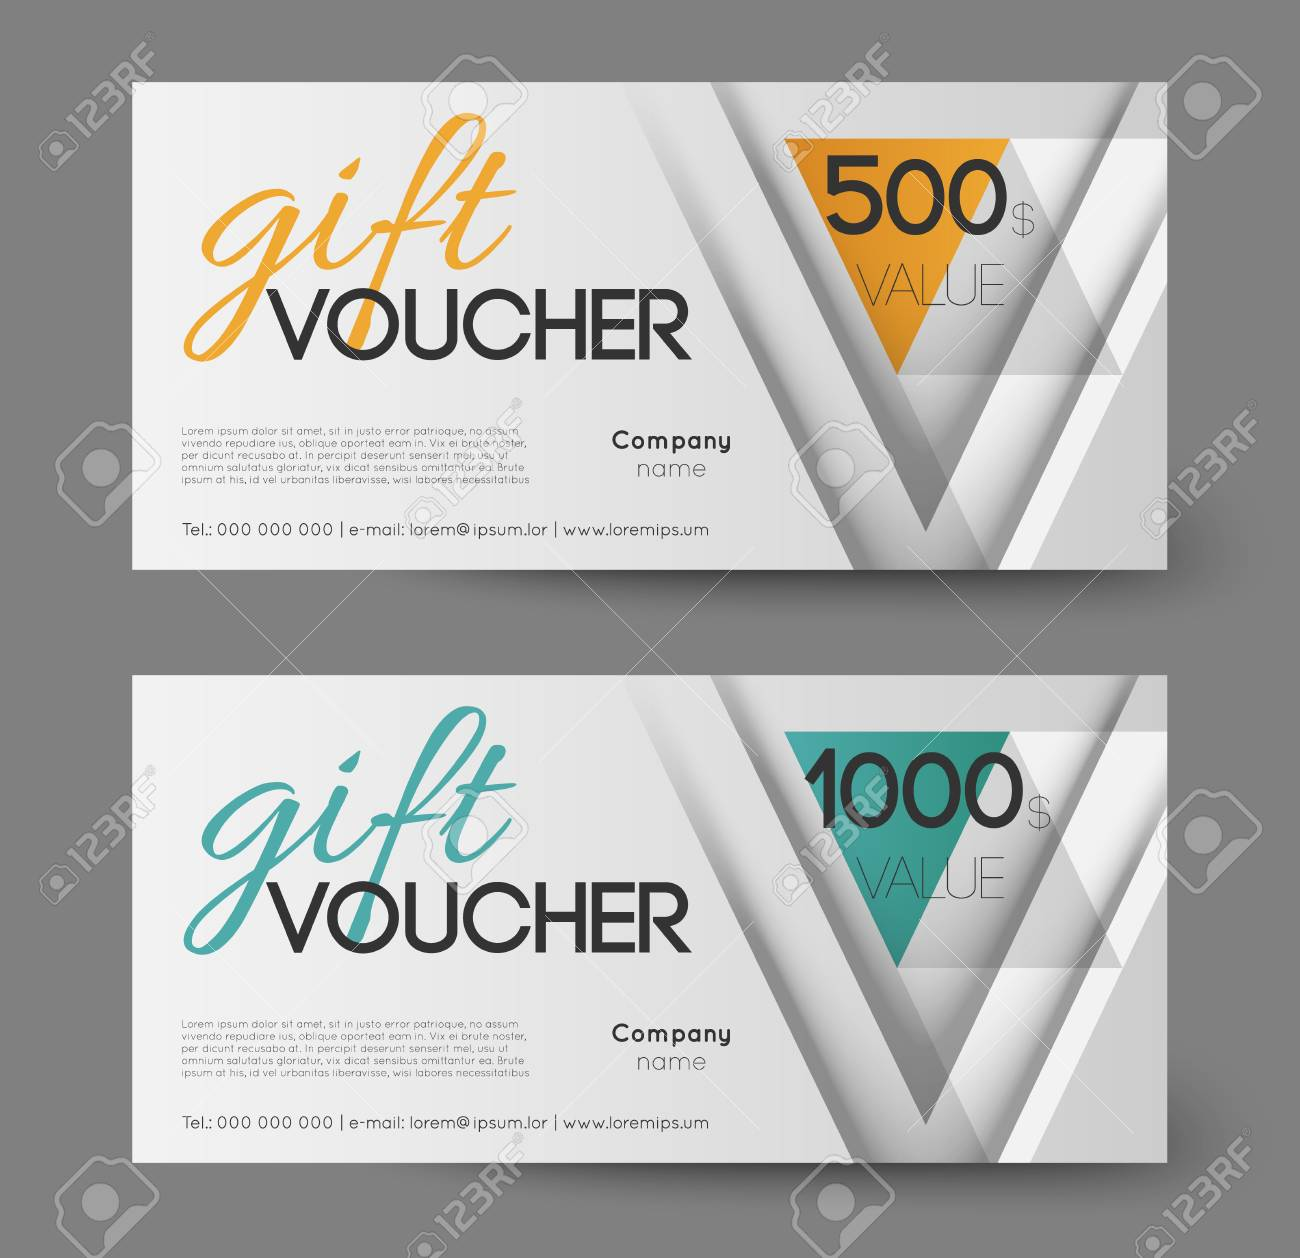 Awesome Hotel Voucher Template Photos - Examples Professional ...